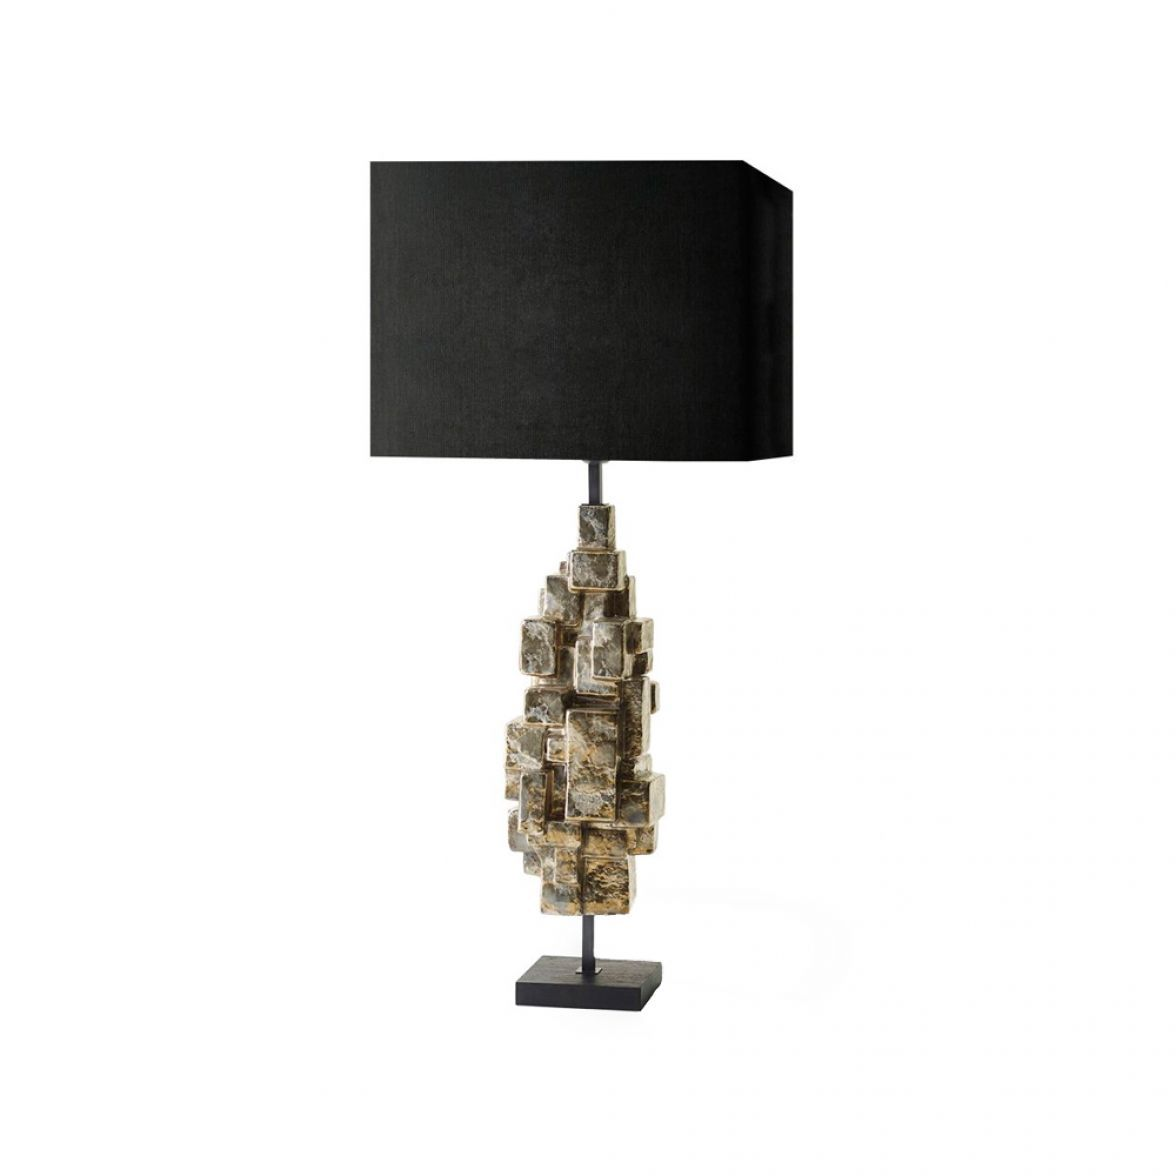 MARVIN TABLE LAMP